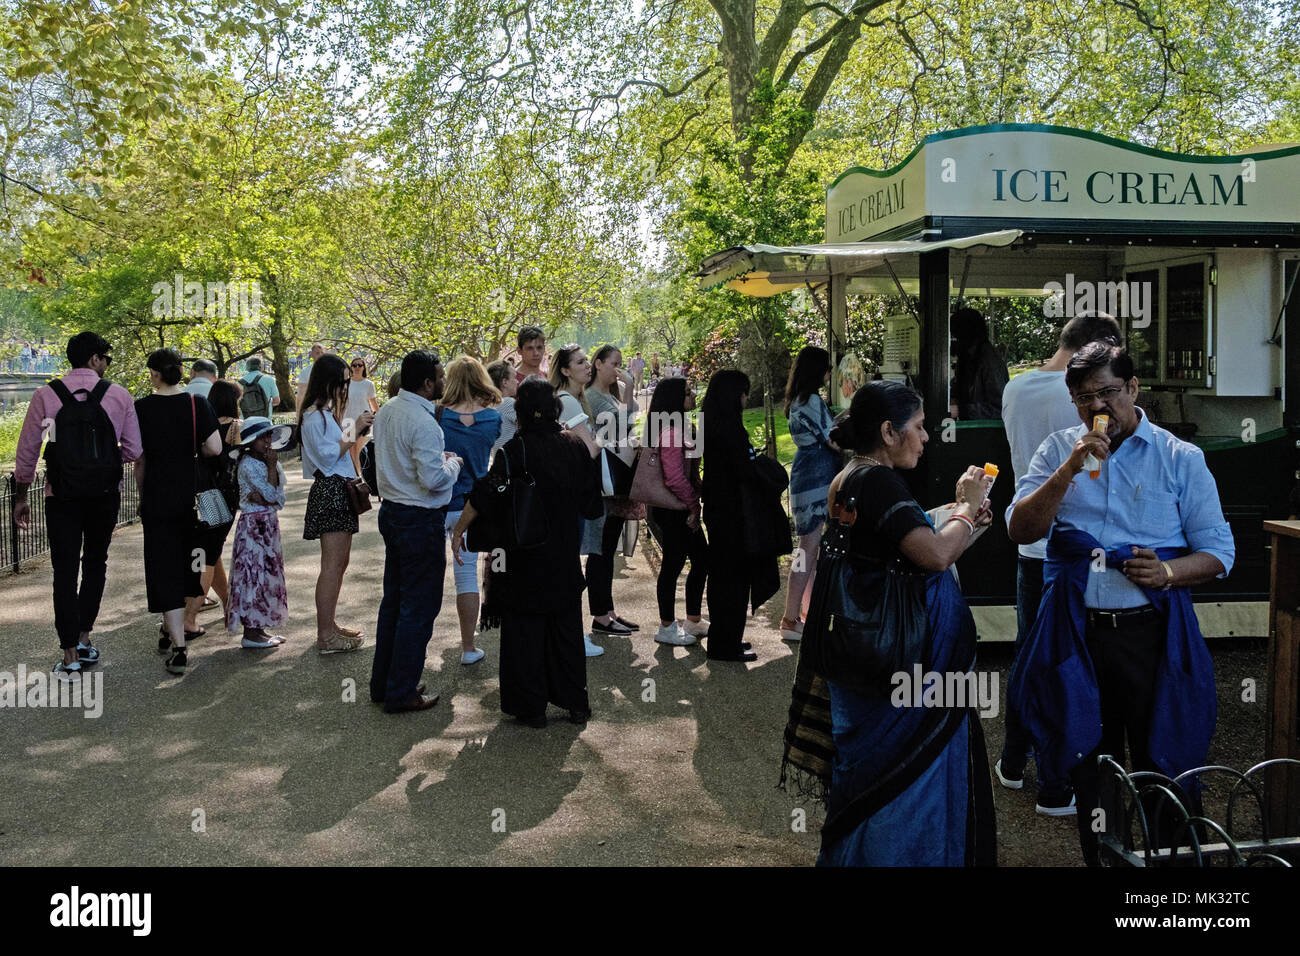 St. James Park, London, England, 6th May, 2018.  London Weather. St. James Park, London, UK, 6th May, 2018. St. James Park is packed today, with people eating ice cream and enjoying this Bank Holiday Weekend during the Heatwave with the temperature in the high 20's Credit: Judi Saunders/Alamy Live News - Stock Image